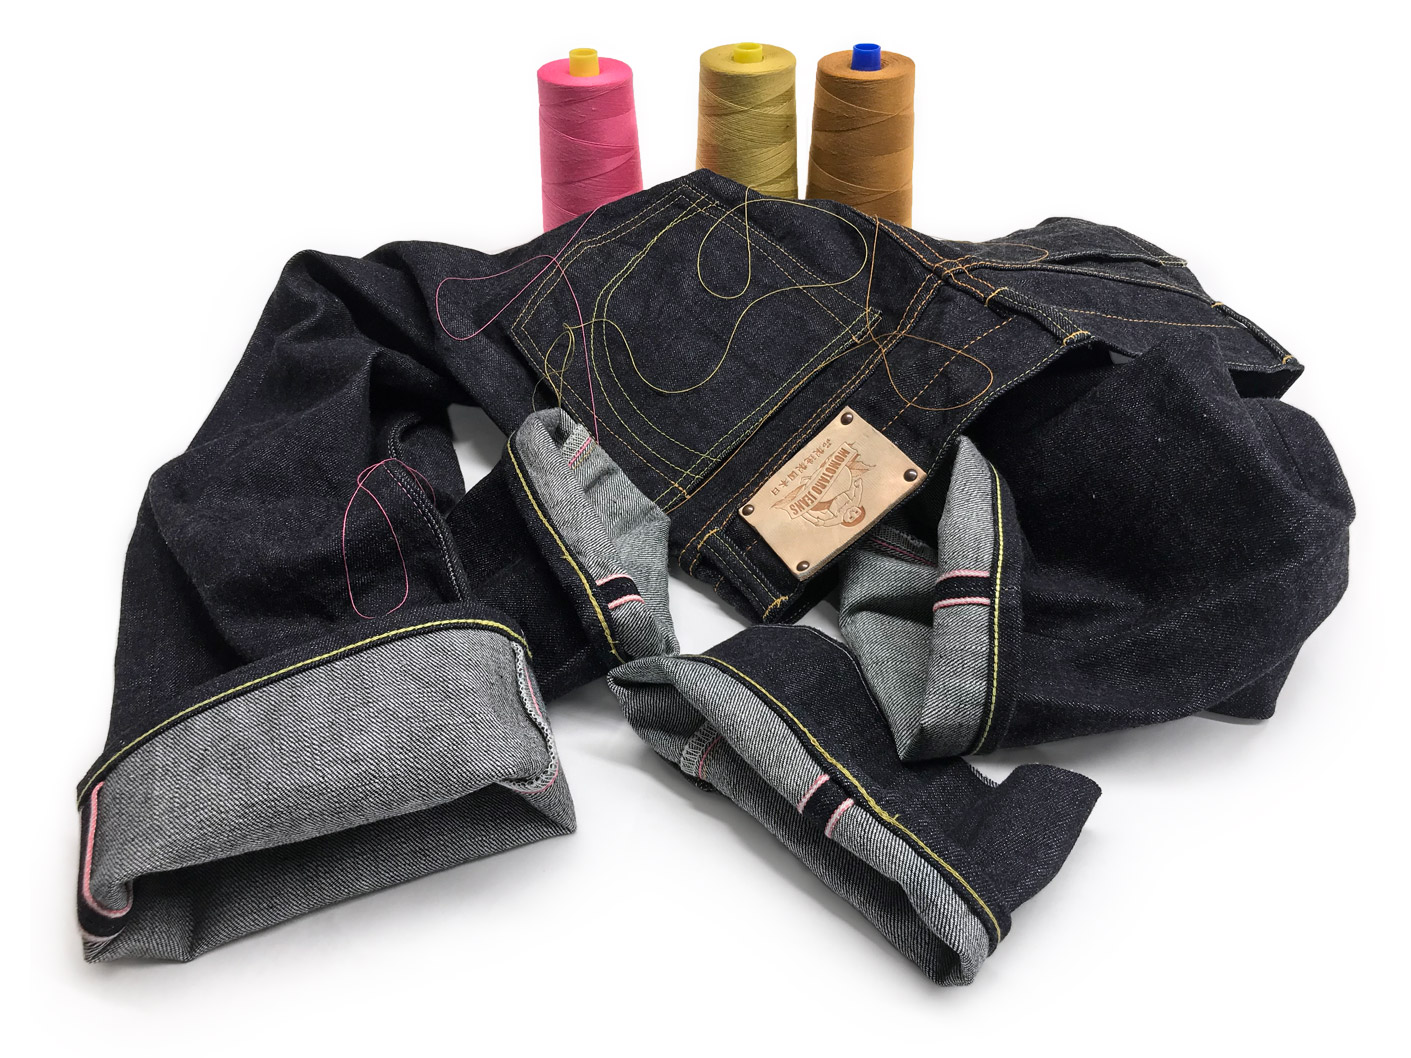 Momotaro jeans tailored professionally with chain stitch hemming and thread & quality matched tapering